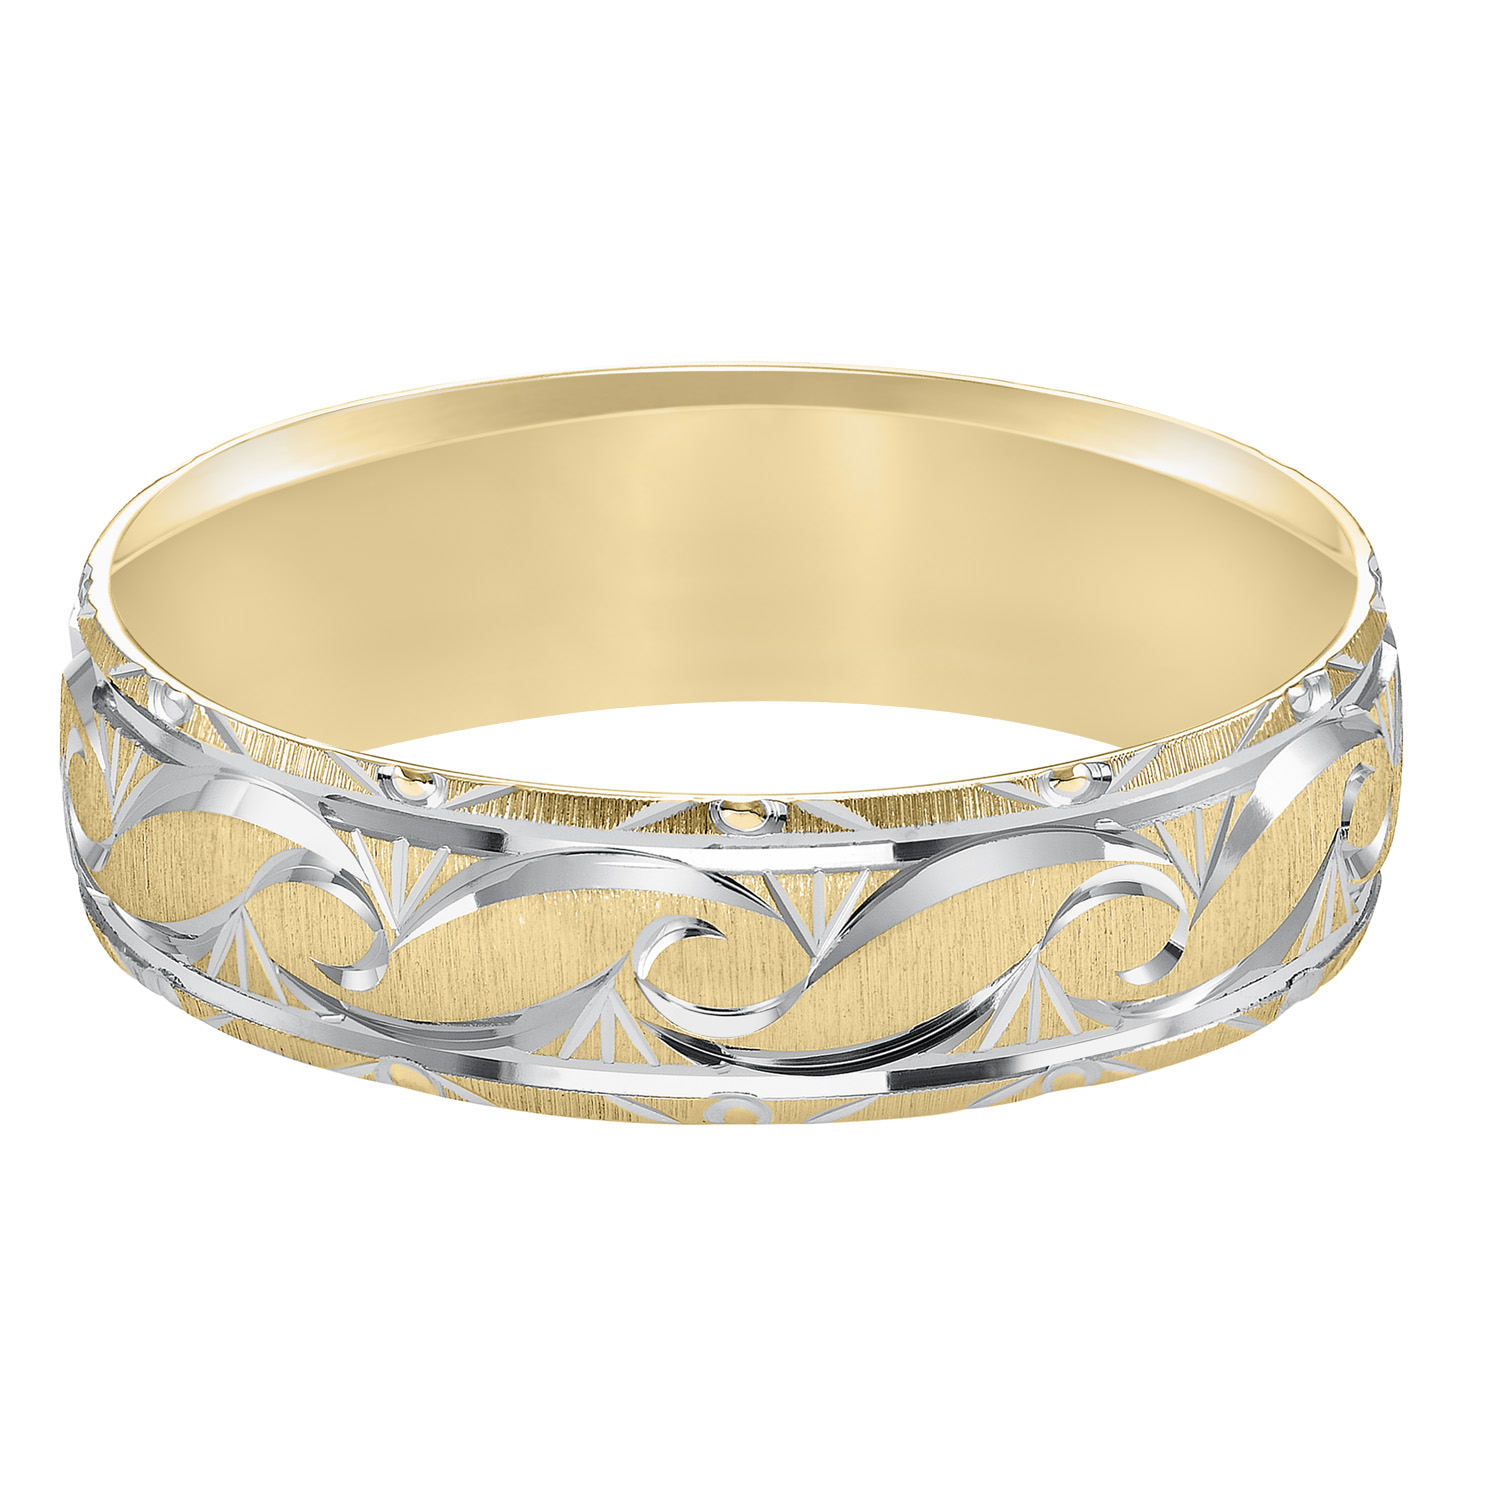 Ornate Satin Finish & Beveled Edge Comfort Fit Wedding Band in 14k Yellow Gold & Rhodium - flat view